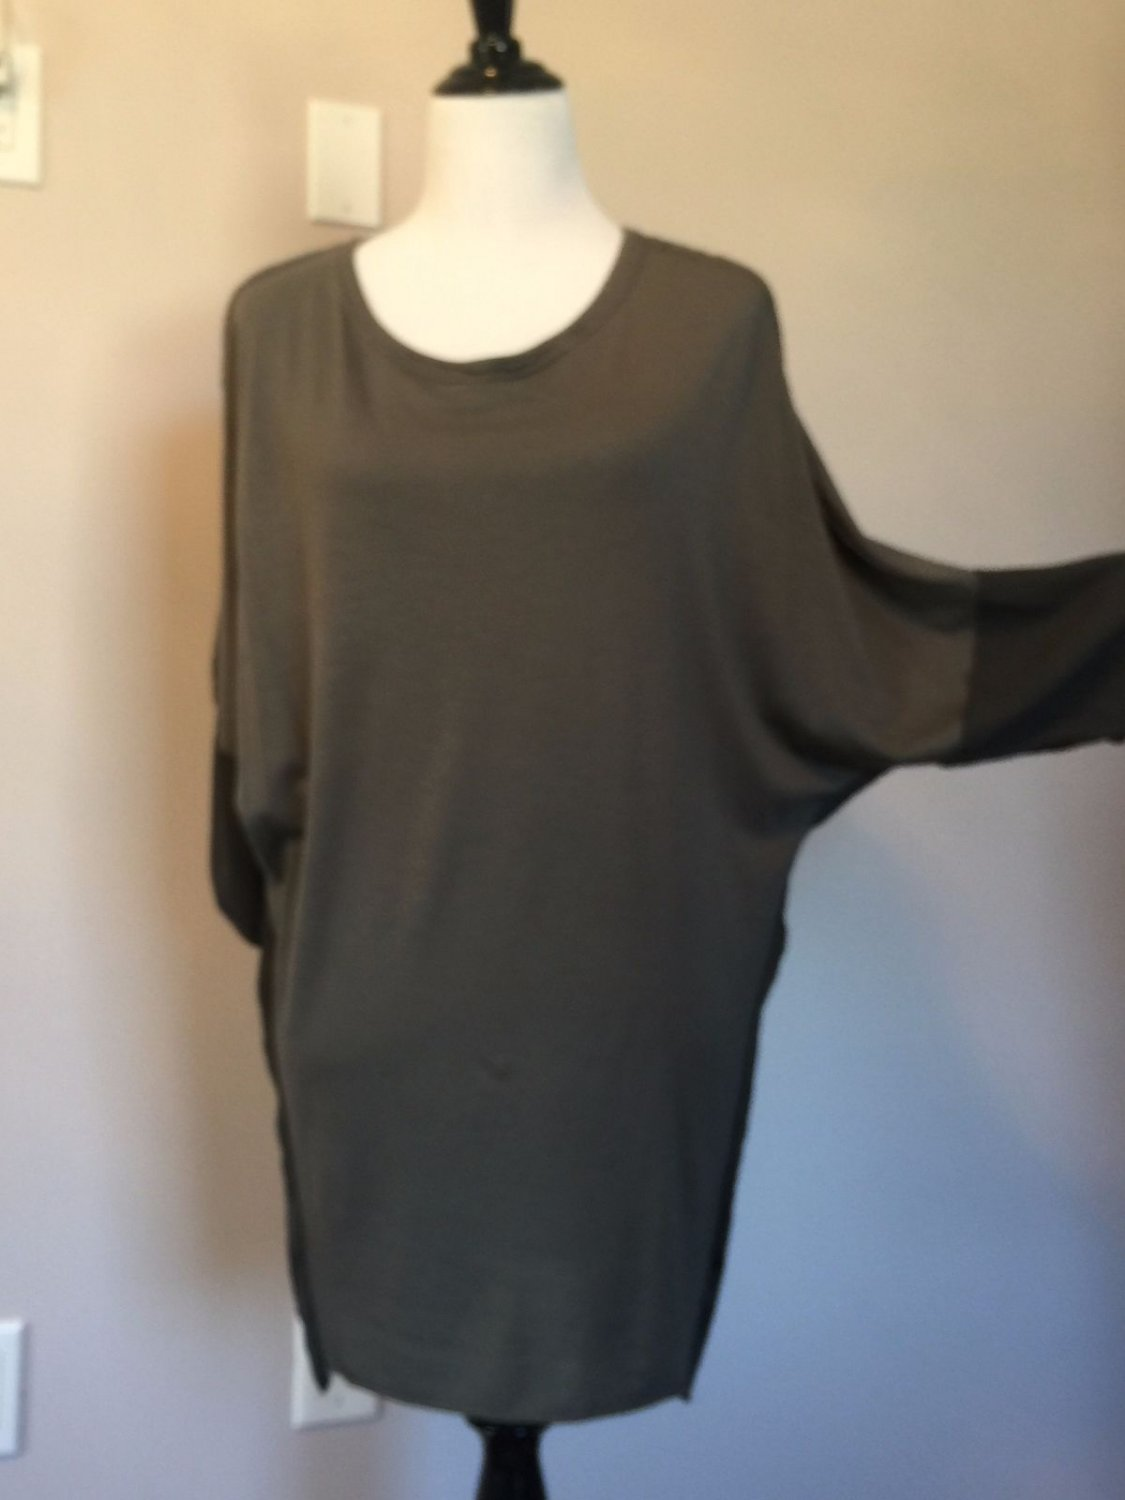 Pre-owned HACHE Gray Wool Blend & Viscose Blend Tunic Top SZ 42 Made in Italy